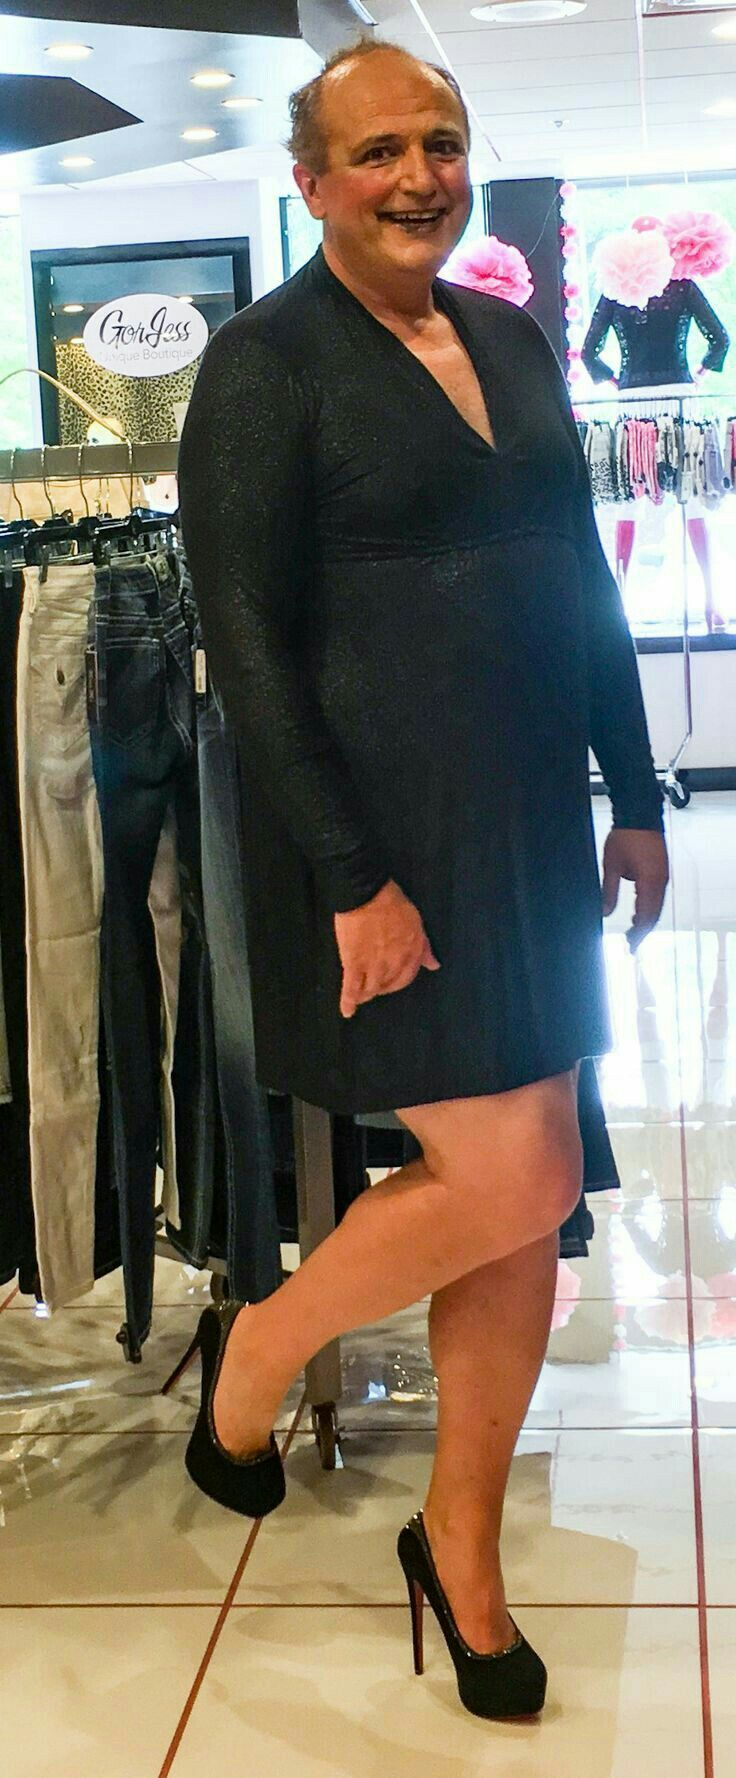 Pin By Jeff Branch On Men In Skirts And Heels In 2020 Gender Fluid Fashion Men Dress Dress And Heels